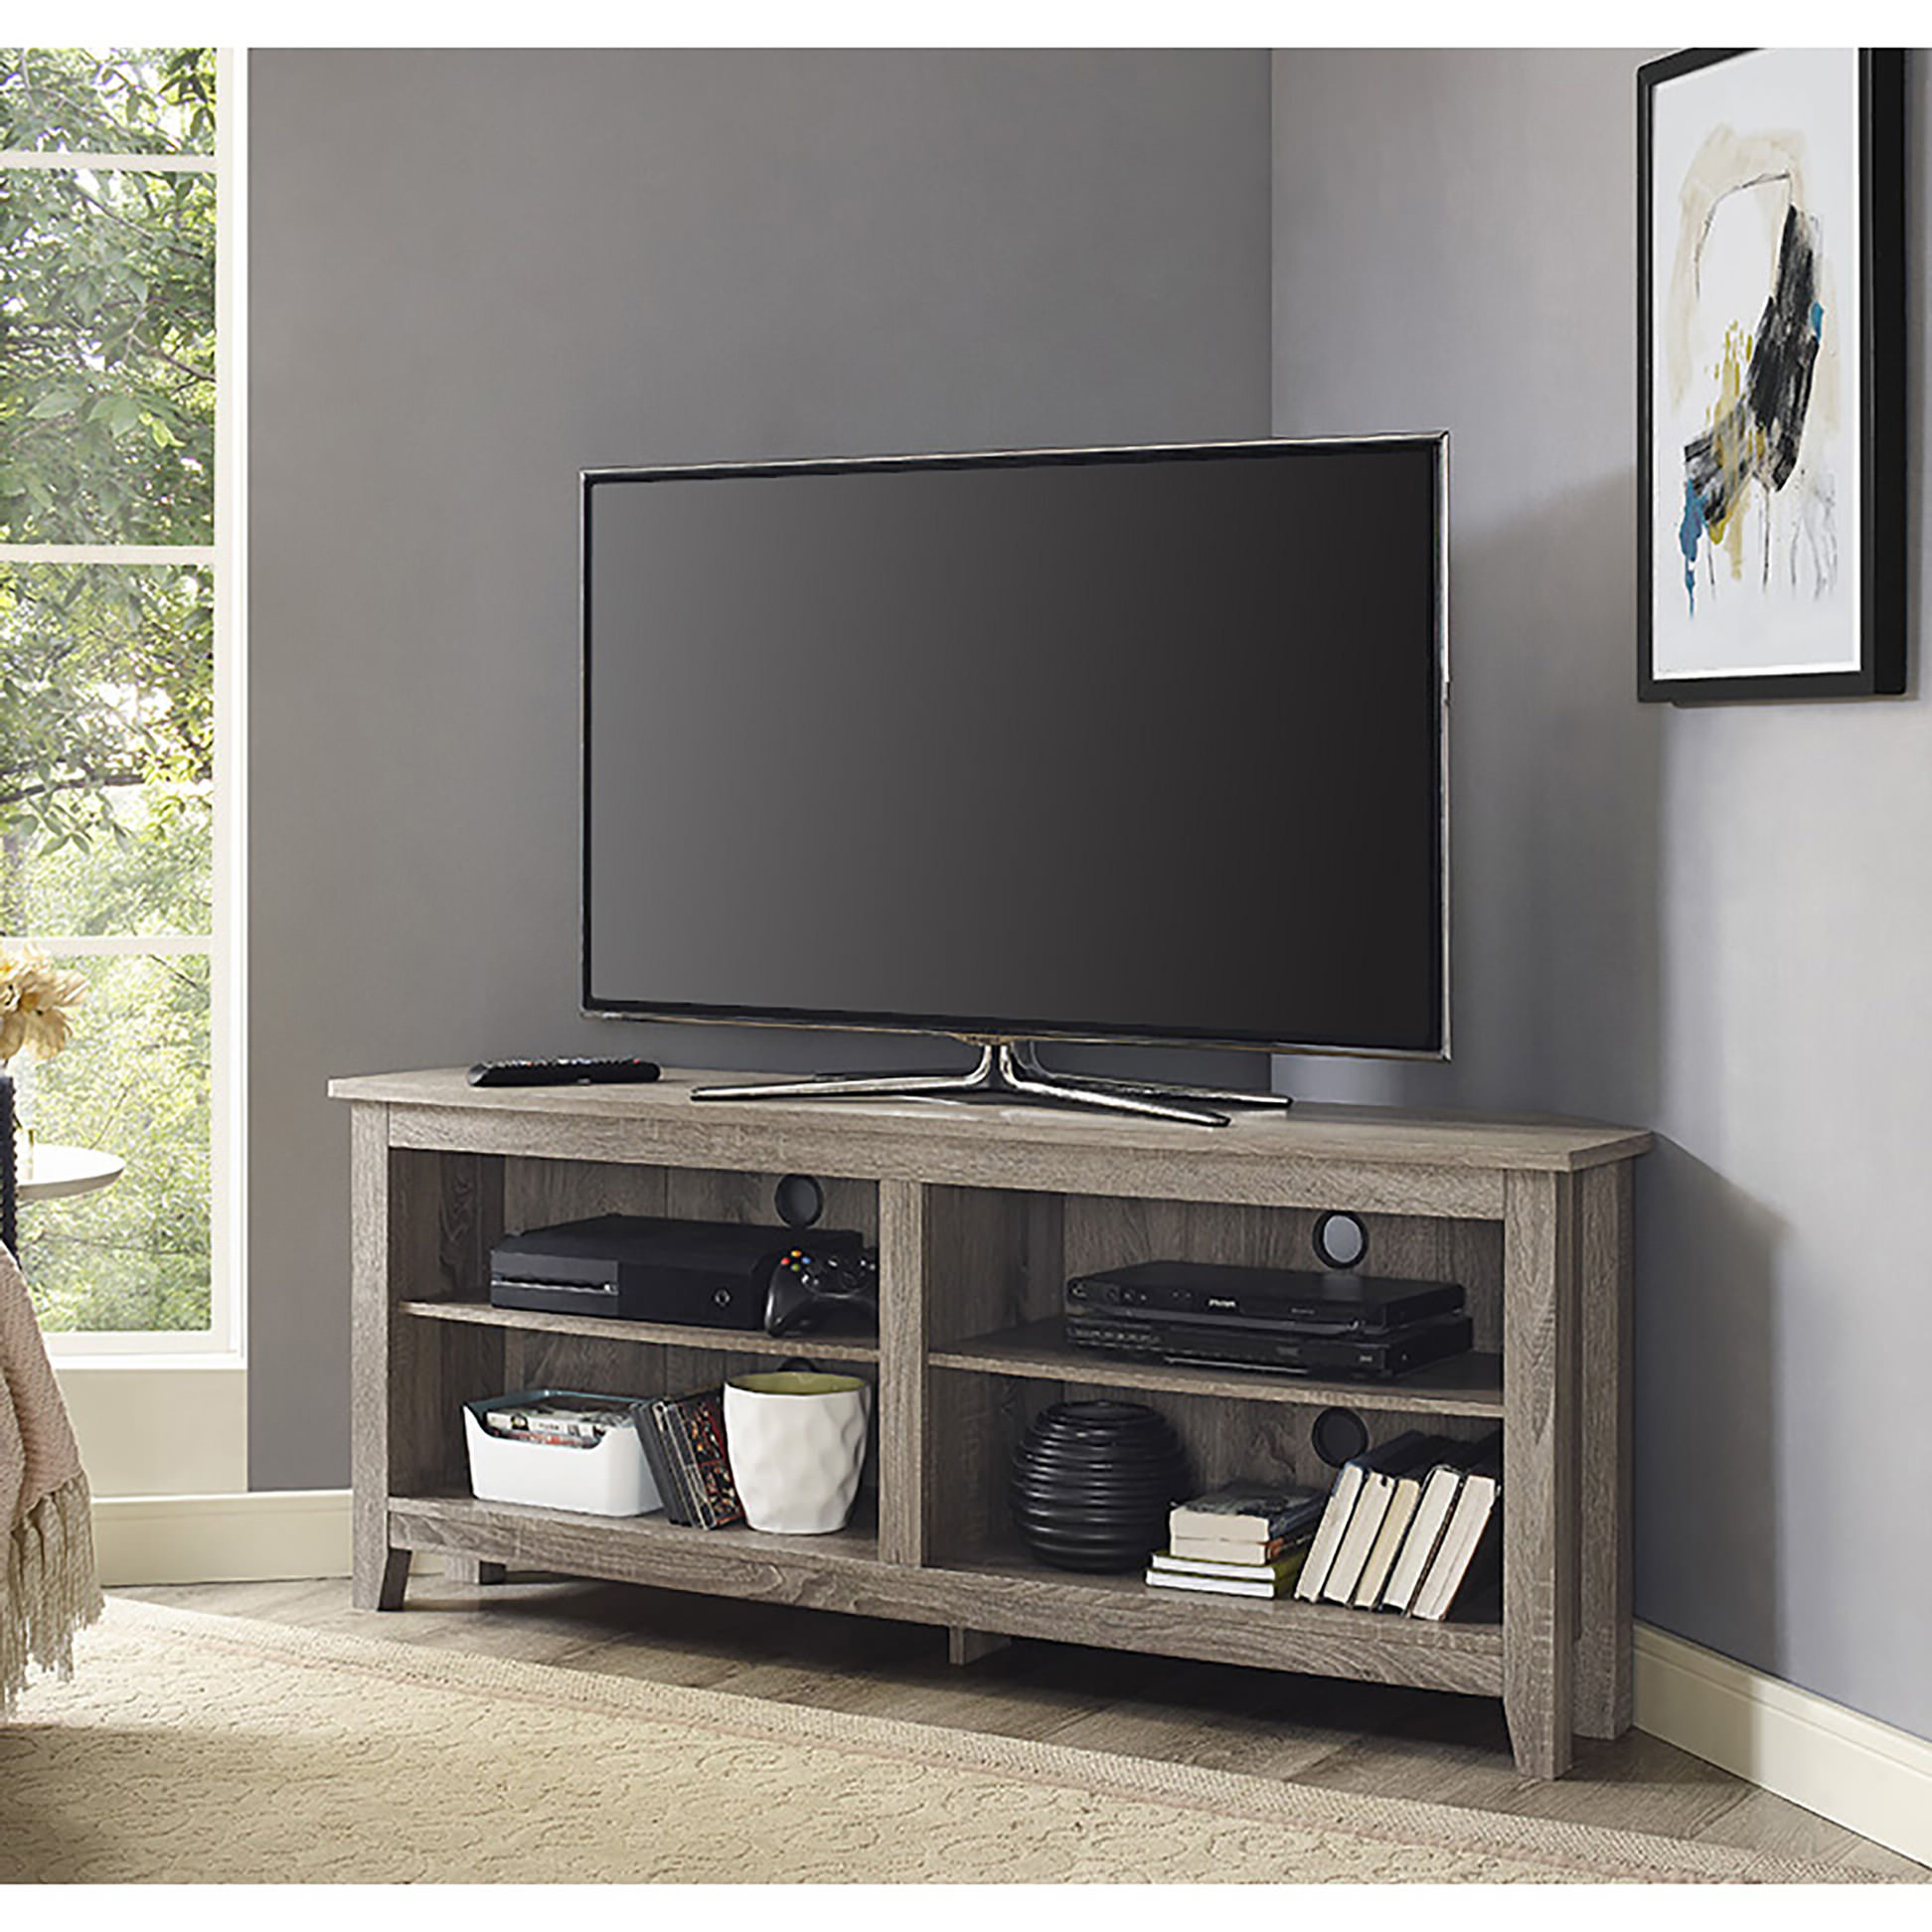 Famous Cordoba Tv Stands With Regard To 58 Inch Corner Tv Stand – Driftwoodwalker Edison (Gallery 6 of 20)